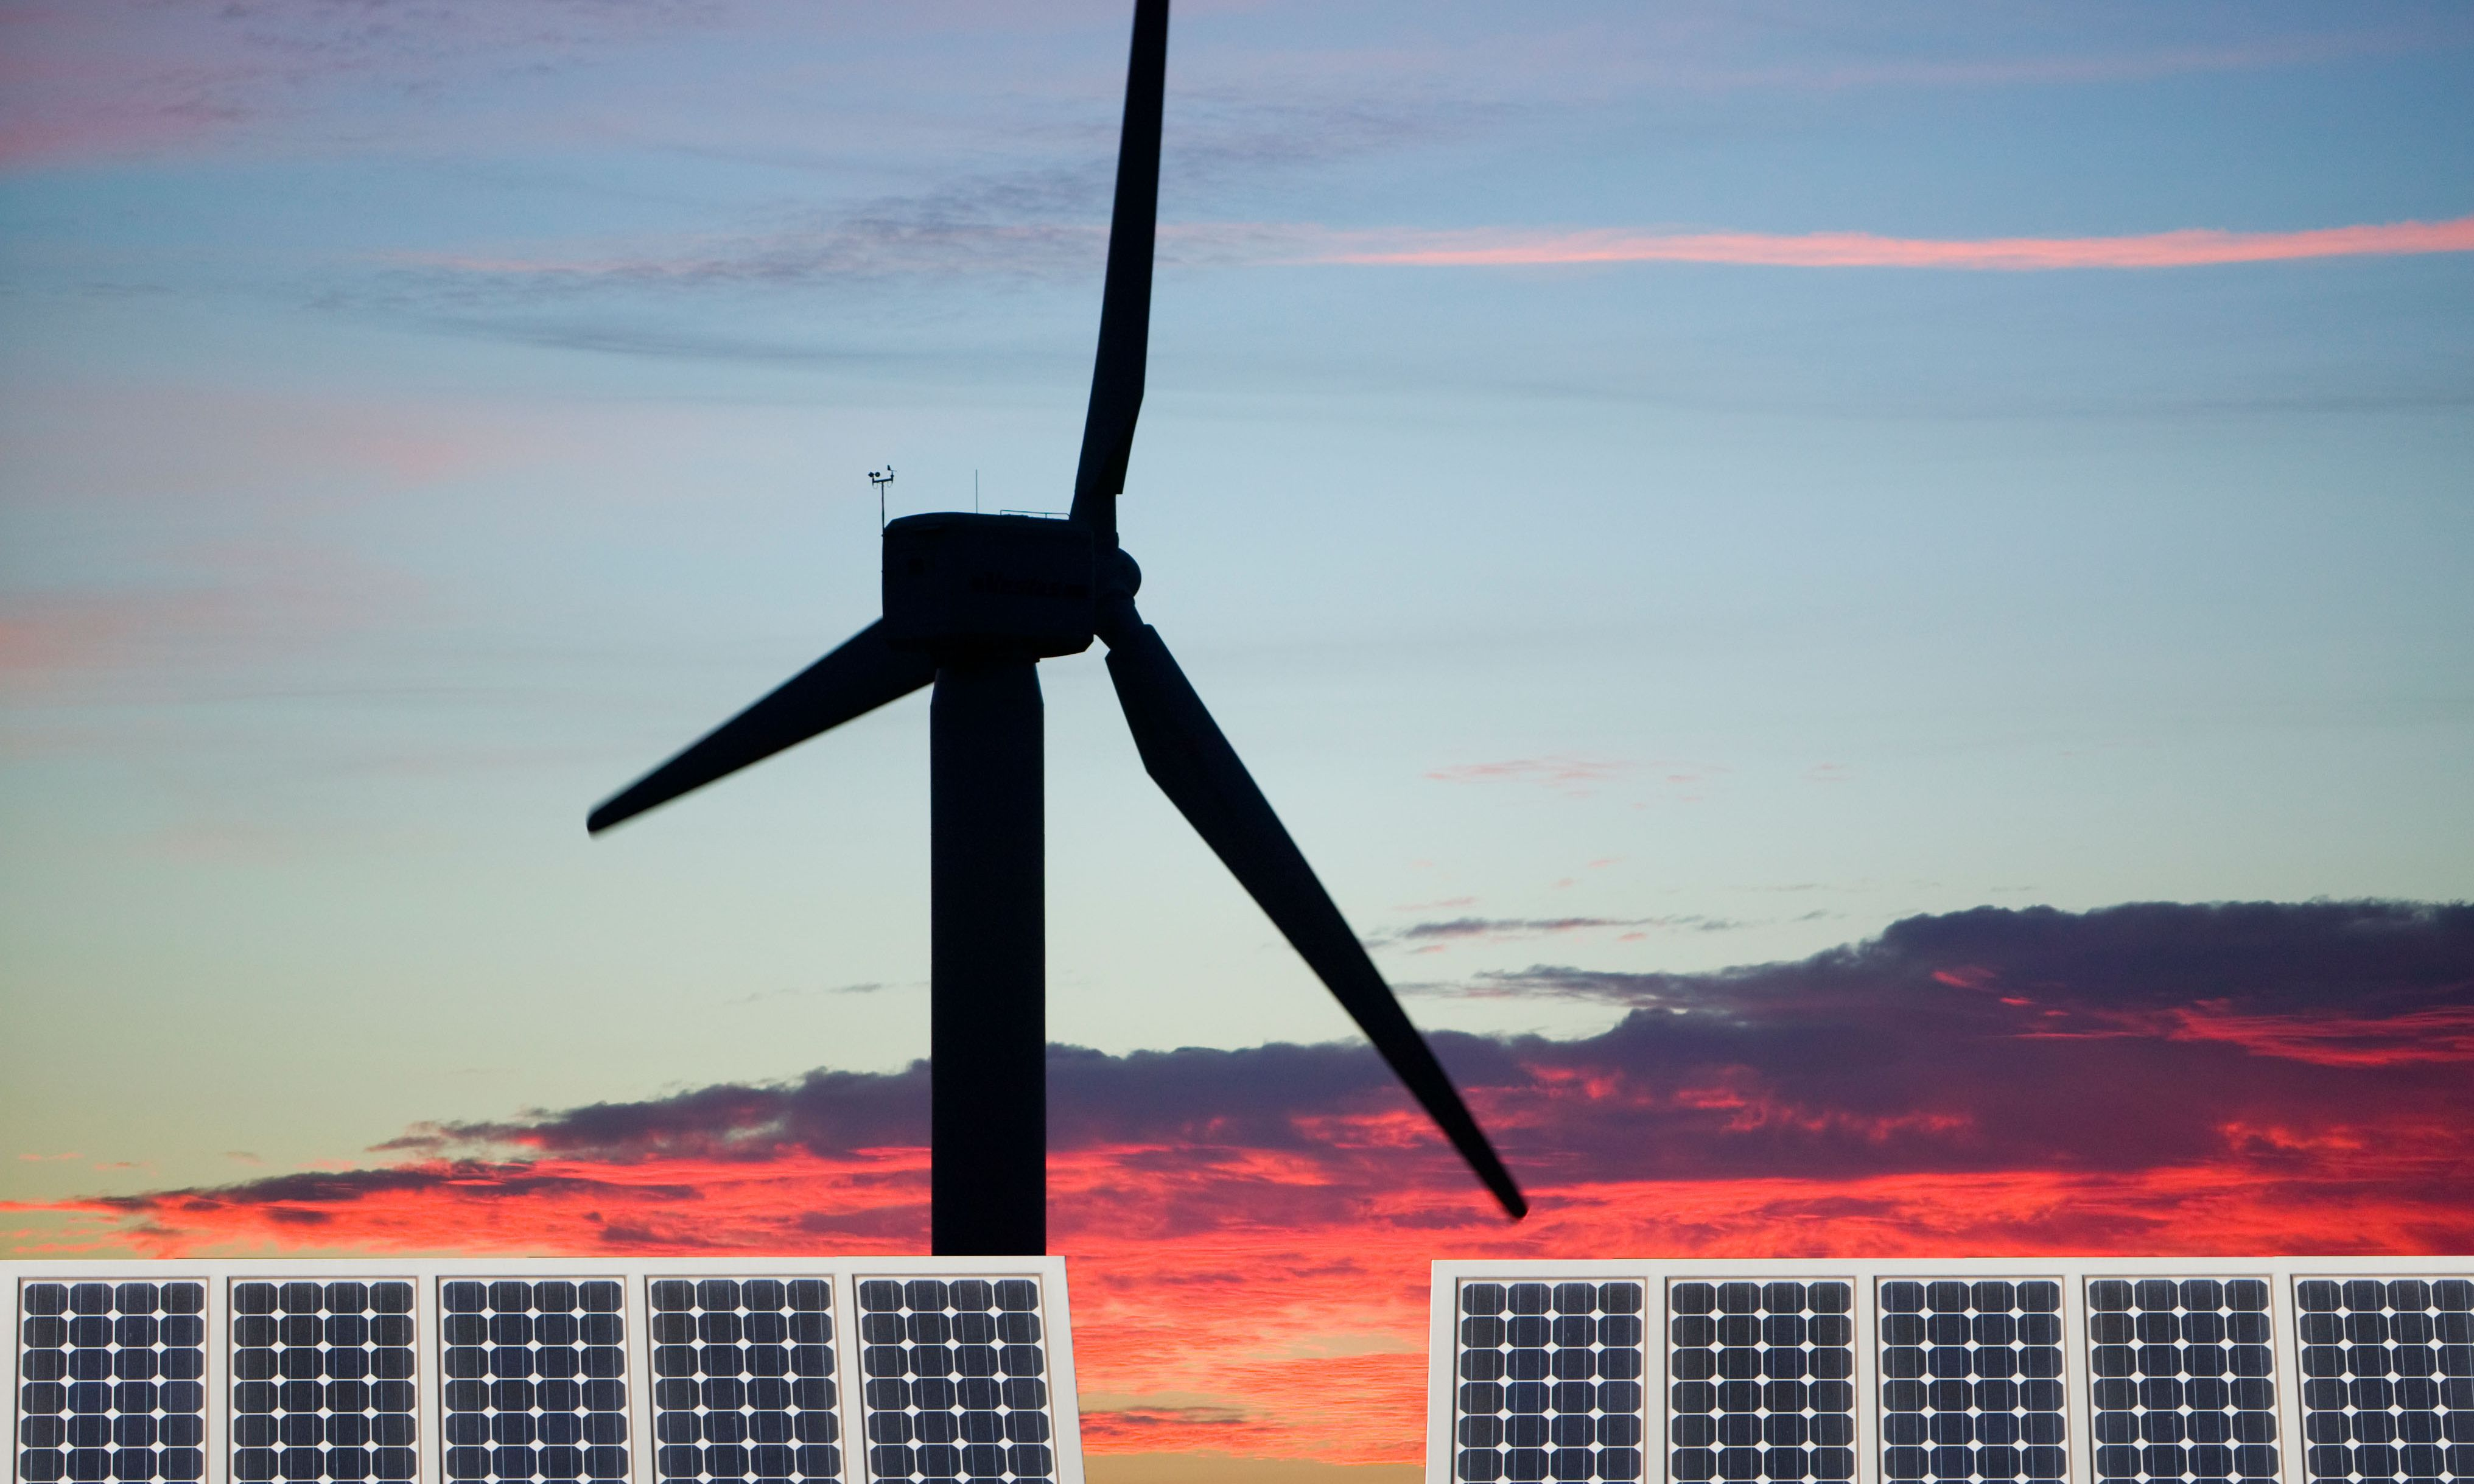 Environmental and economic impact of British energy policy